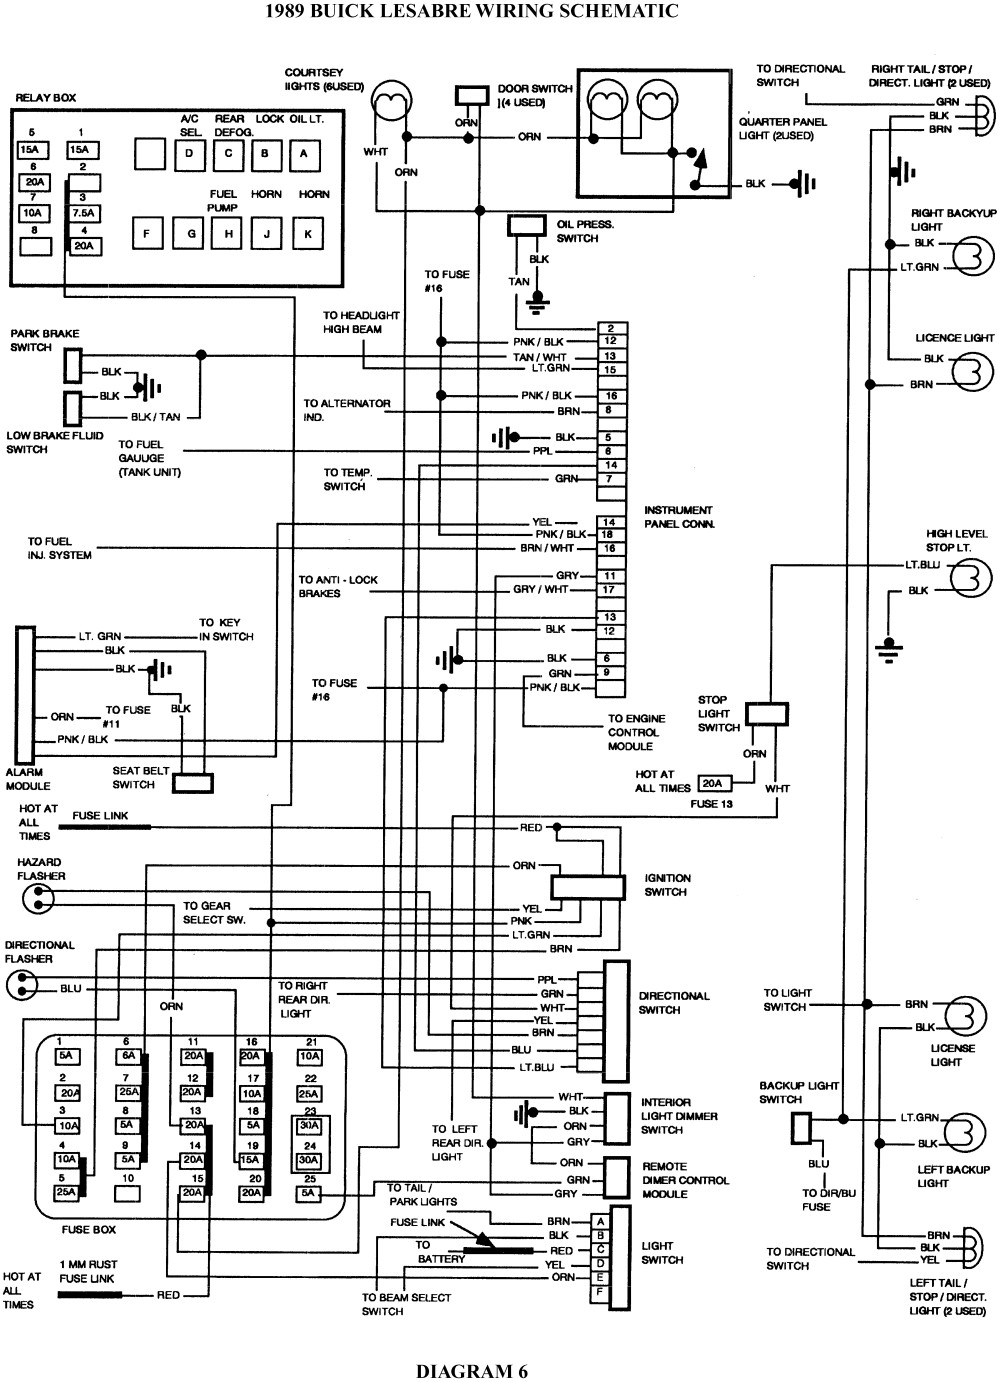 Electrical Wiring Diagrams For 1997 Buick Park Avenue 2001 Dodge Caravan Engine Diagram 2005 Acura Tsx Century Radio